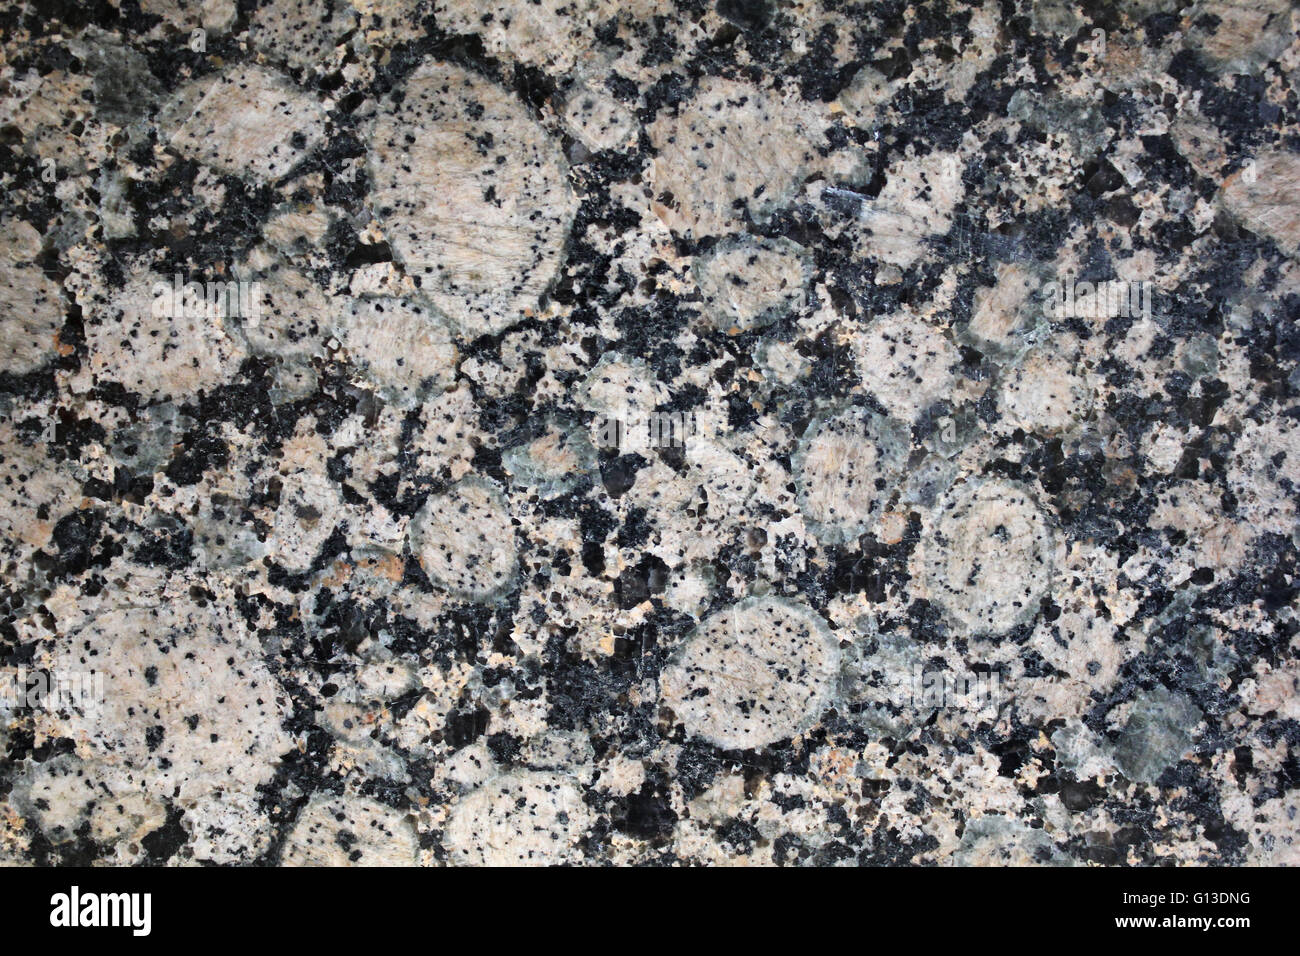 Natural weathered pink and black granite / marble texture - Stock Image